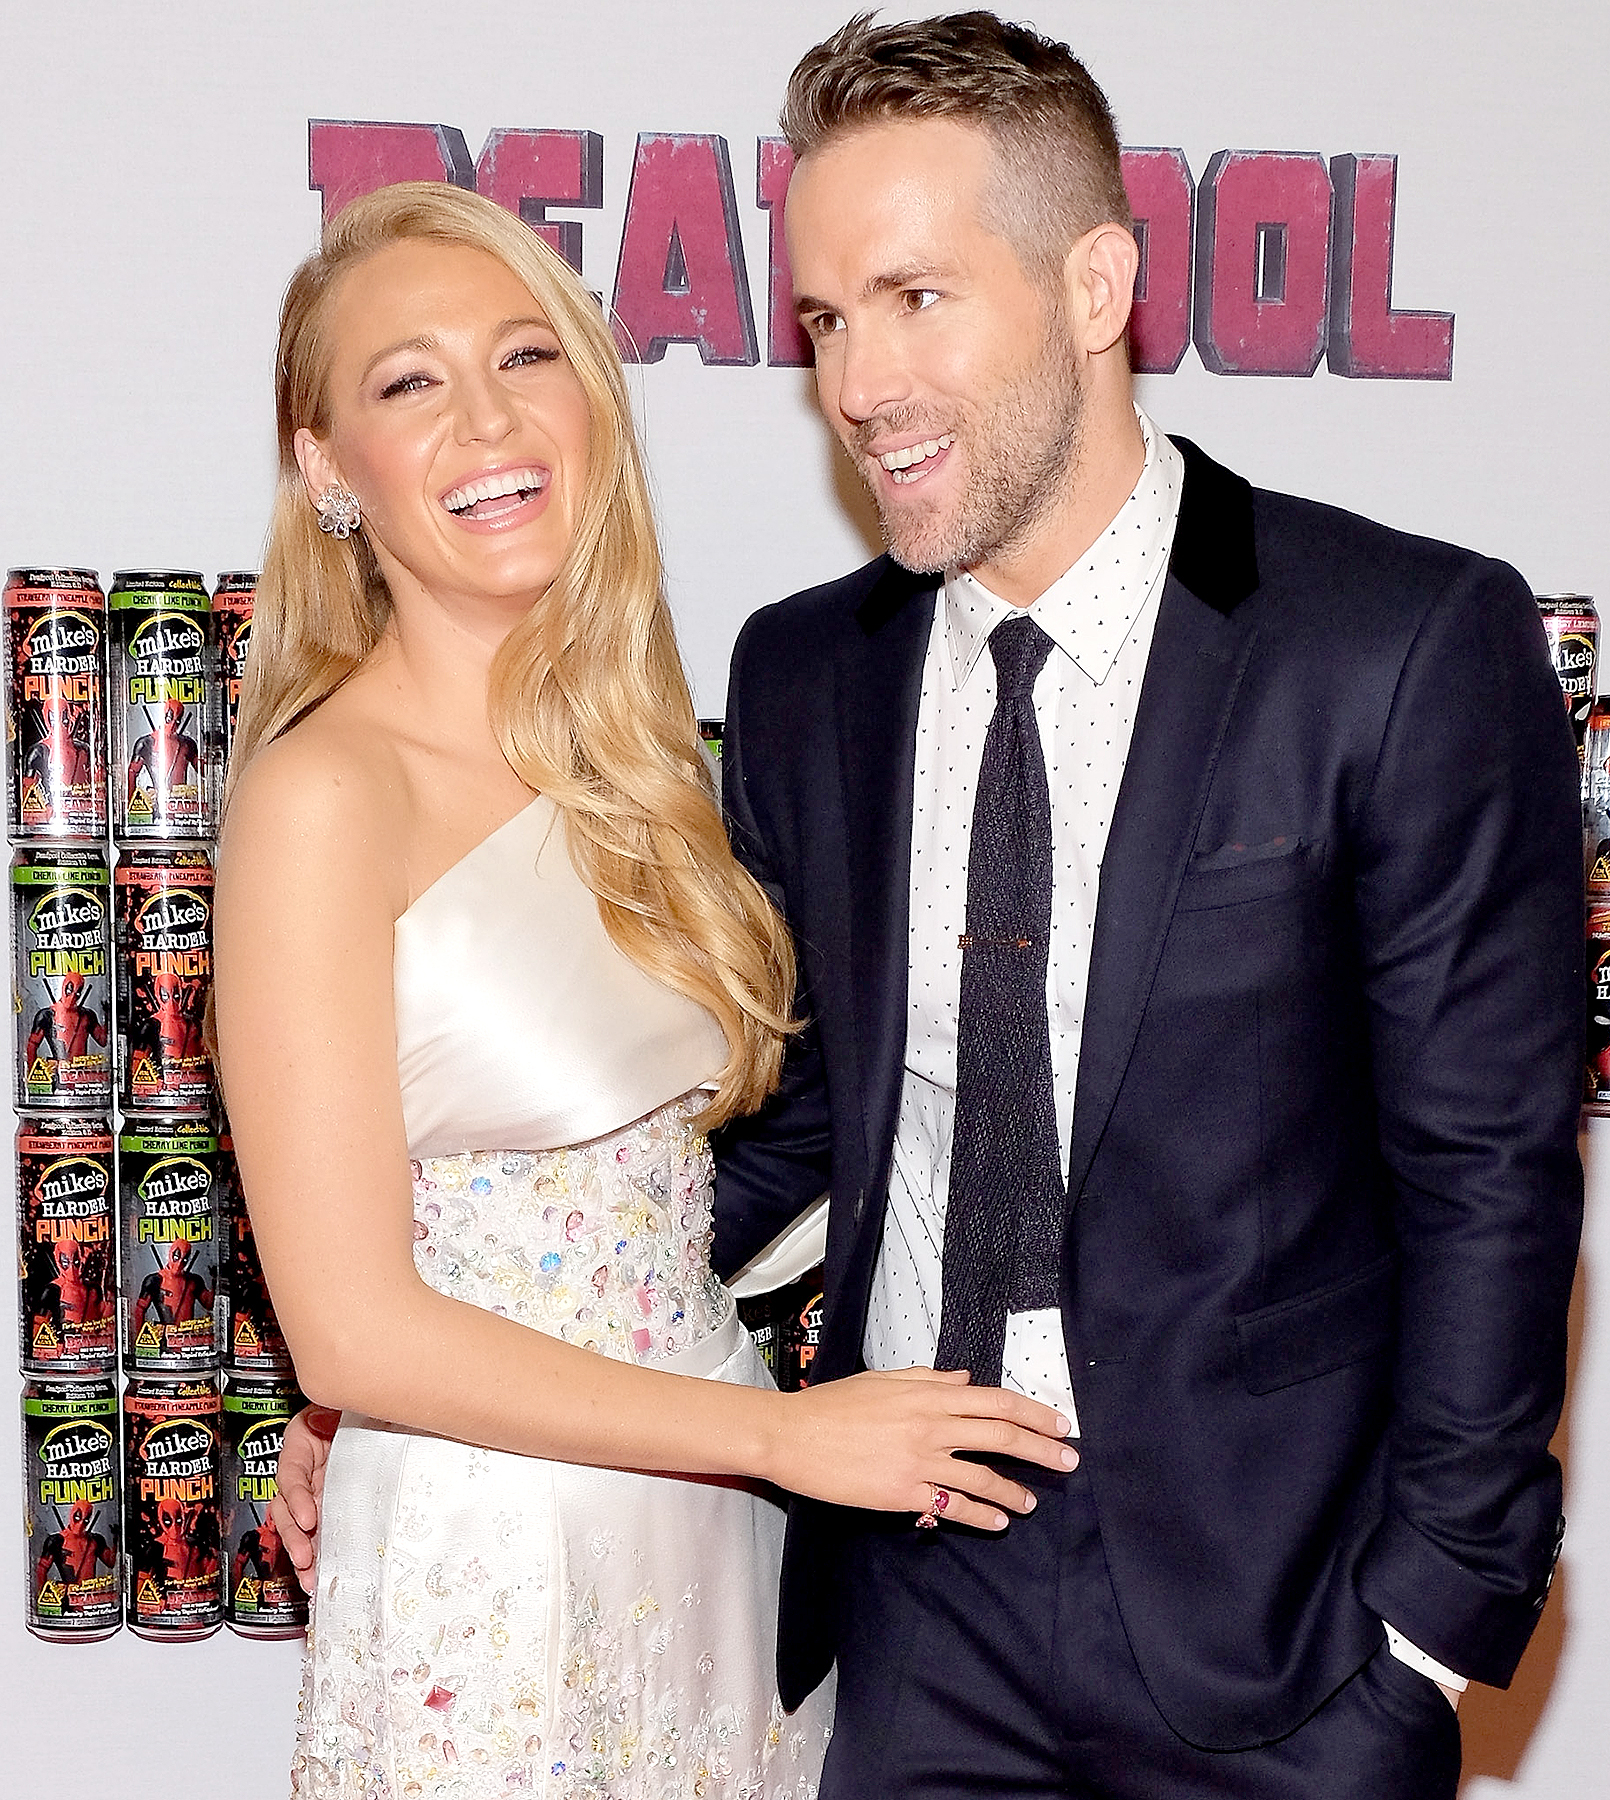 Blake Lively and Ryan Reynolds' Most Savage Trolling Moments